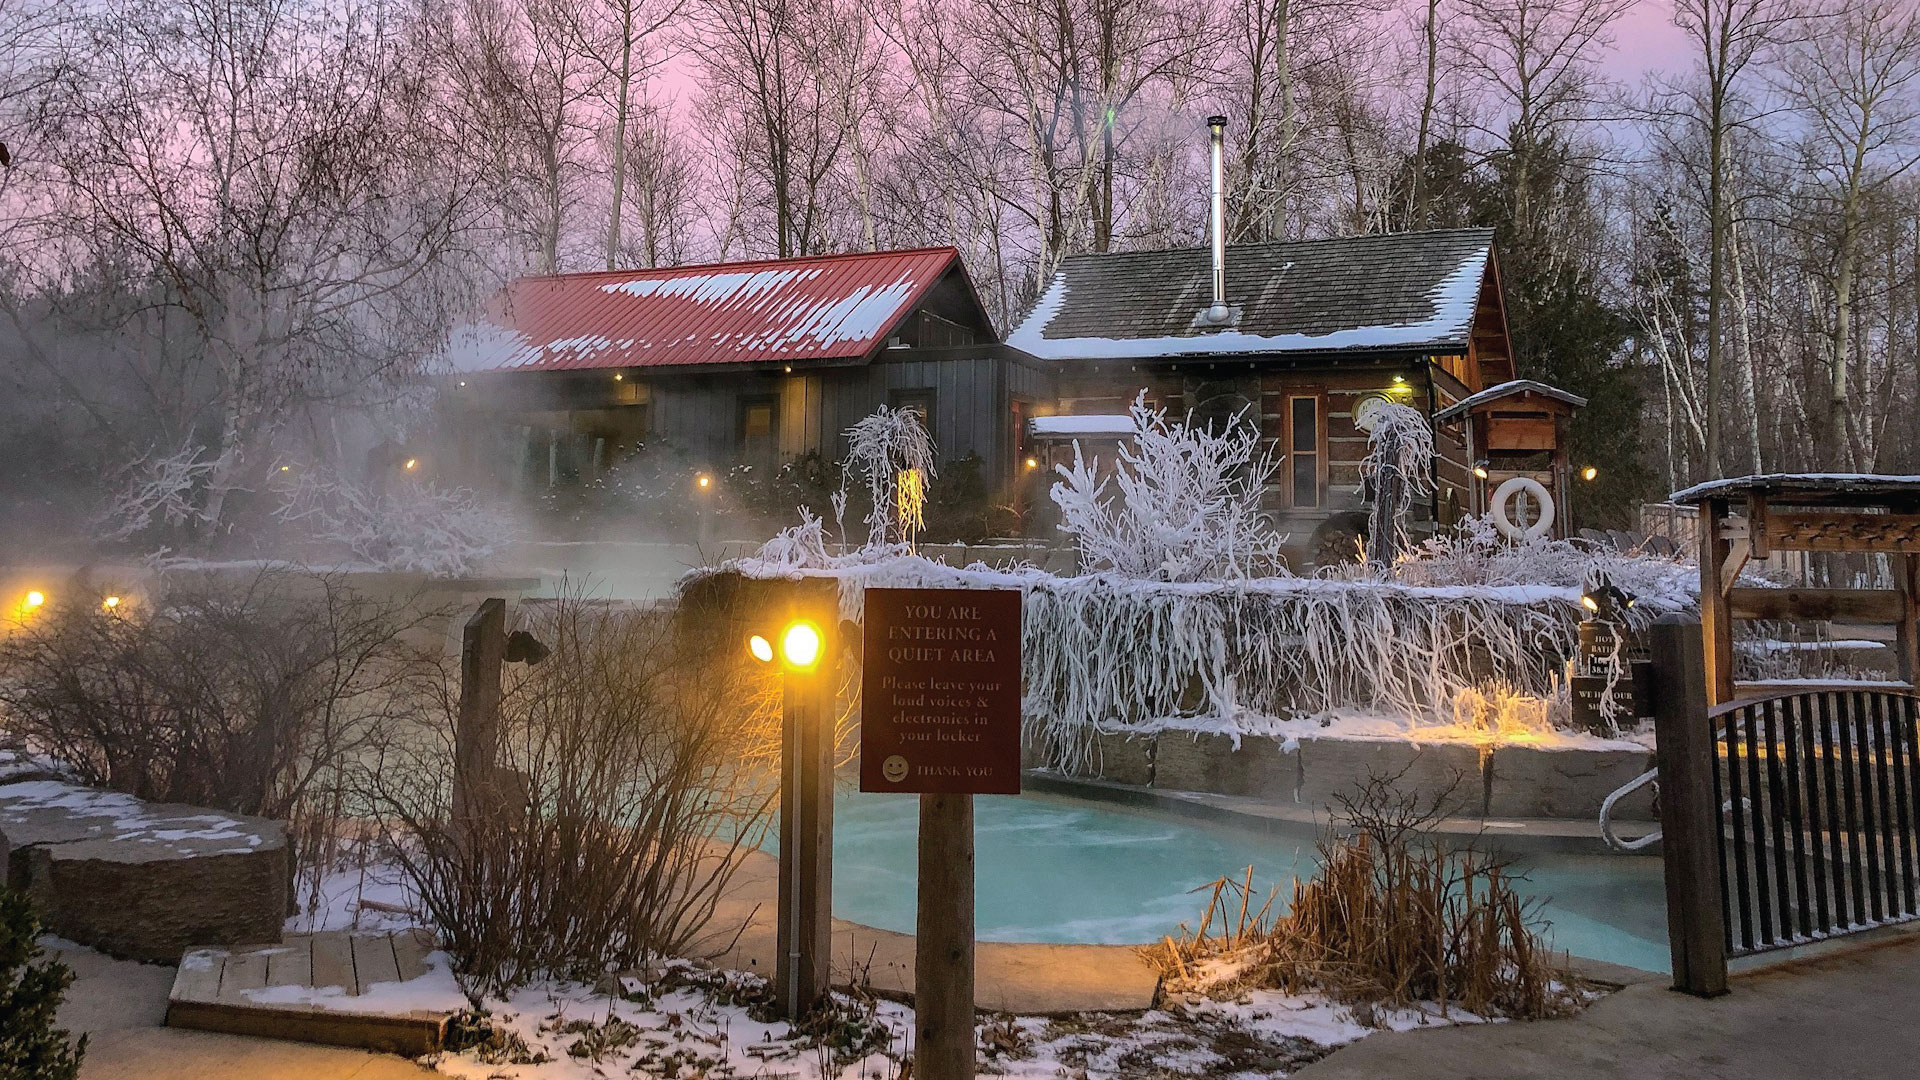 Dusk falls on Scandinave Spa Blue Mountain, the trees are covered in snow and ice.